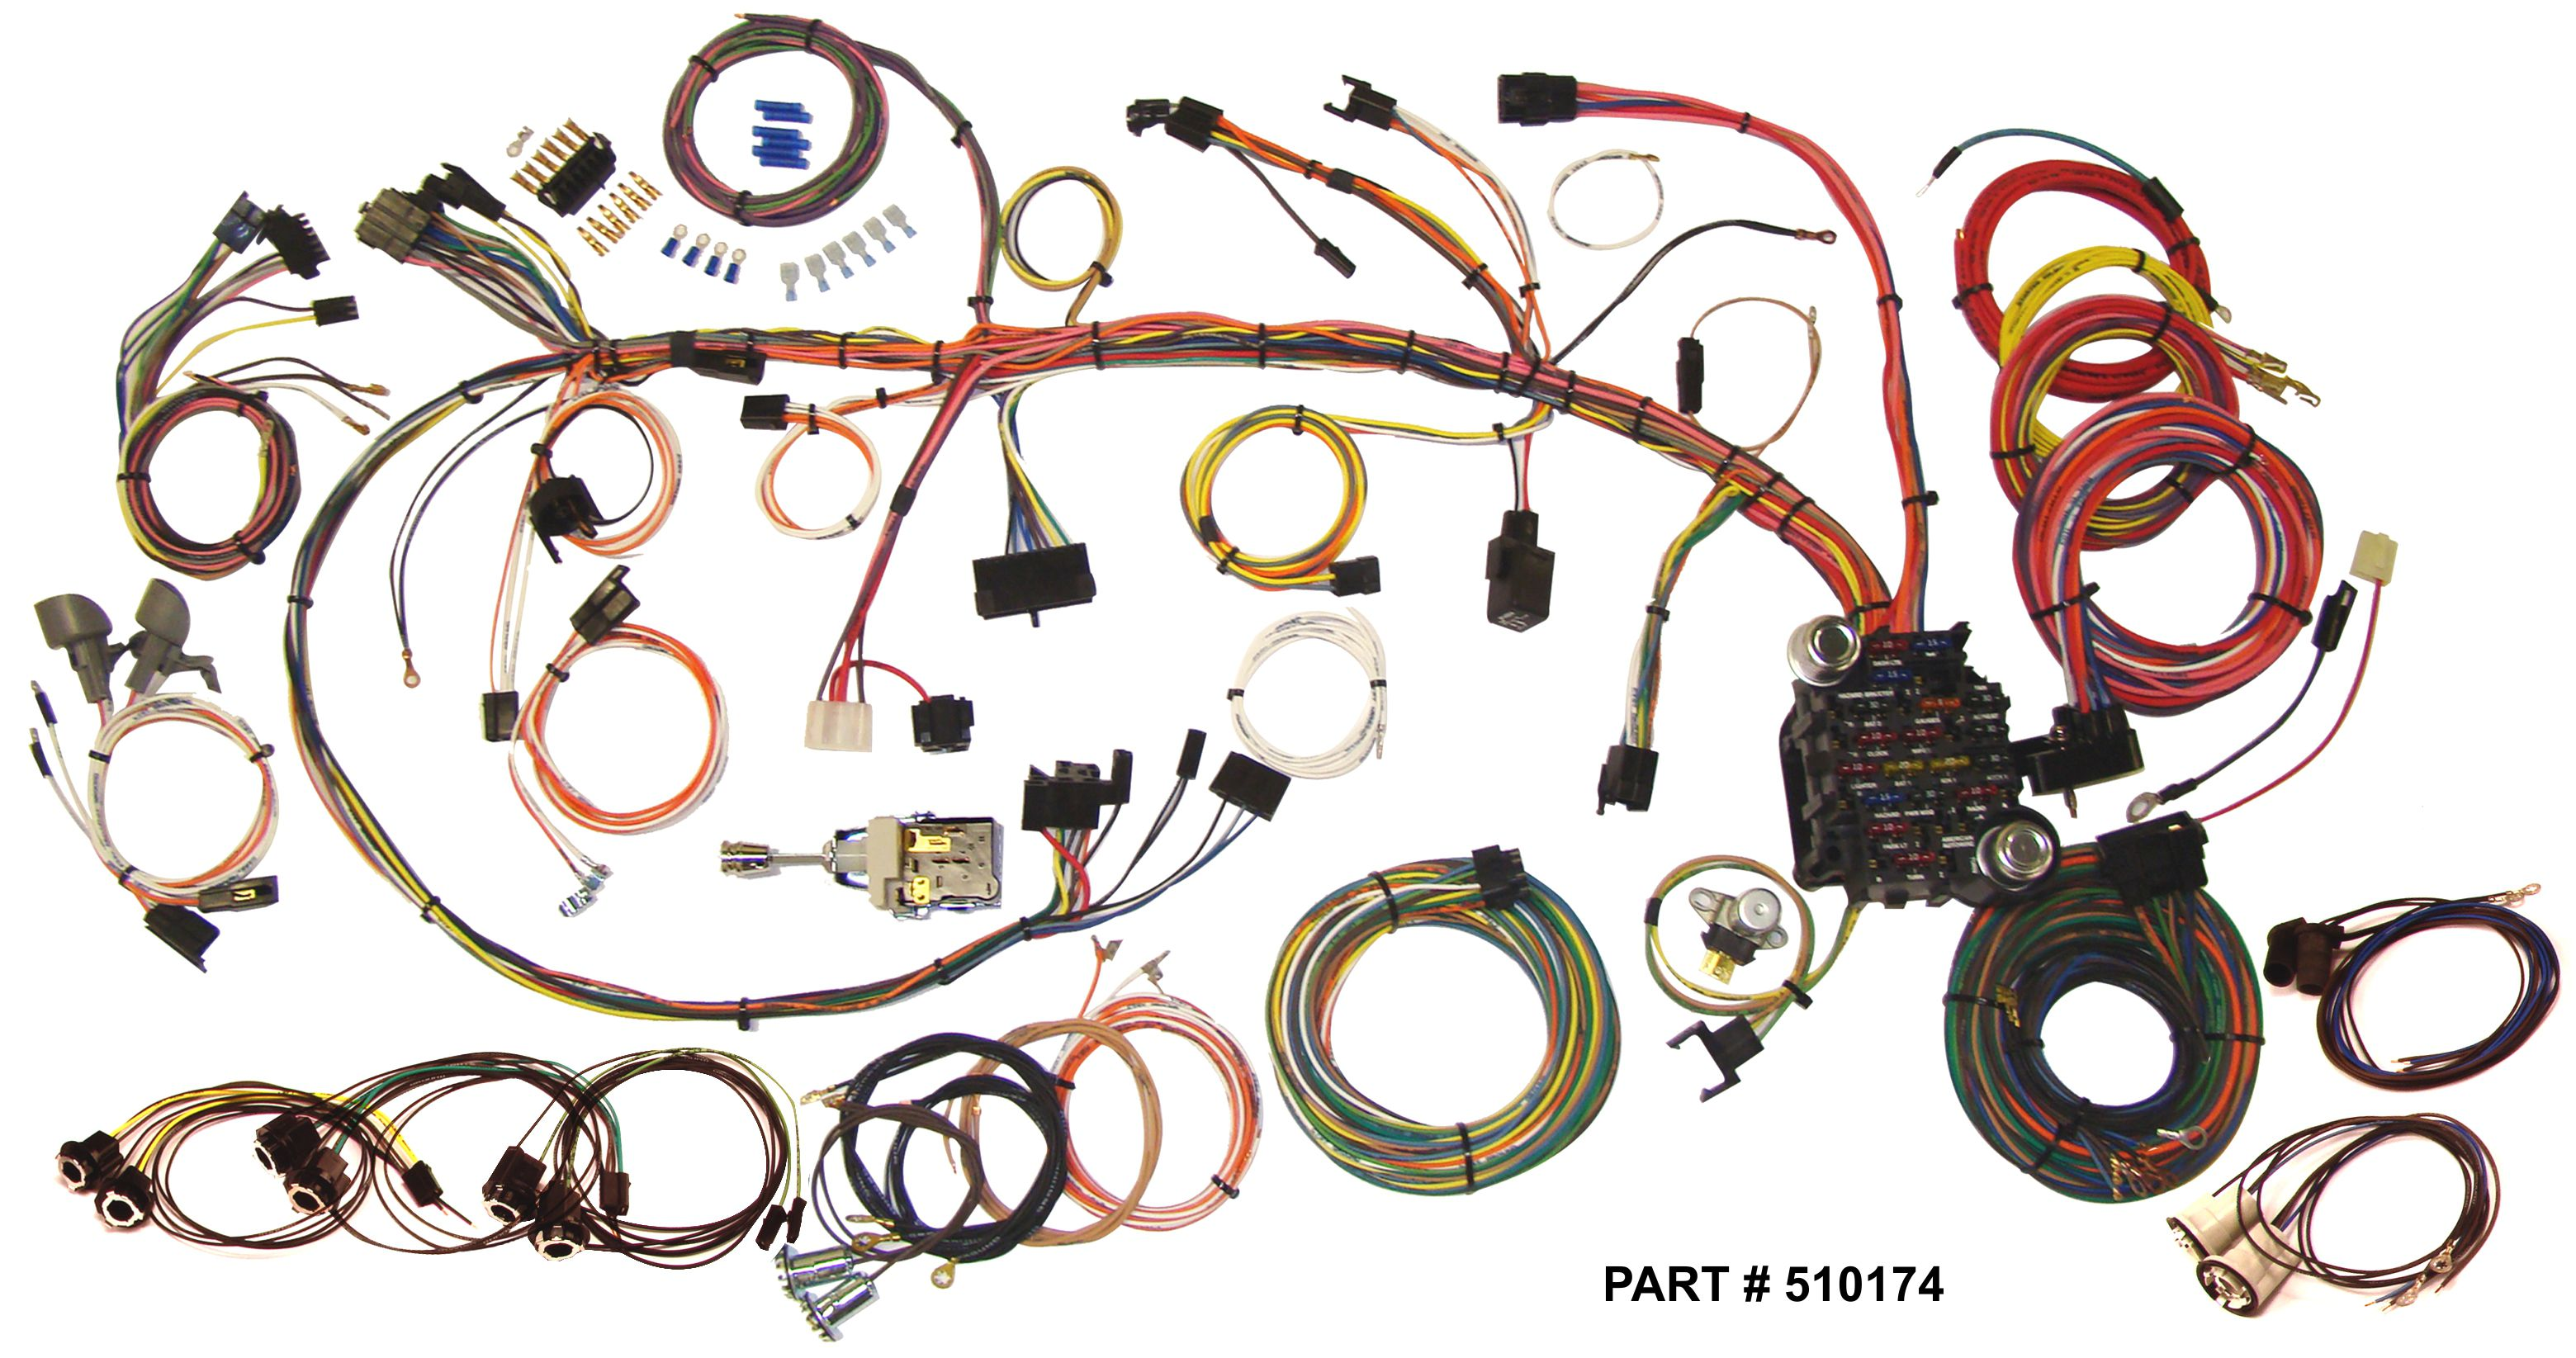 1970-73 Firebird RestoMod Wiring Harness System